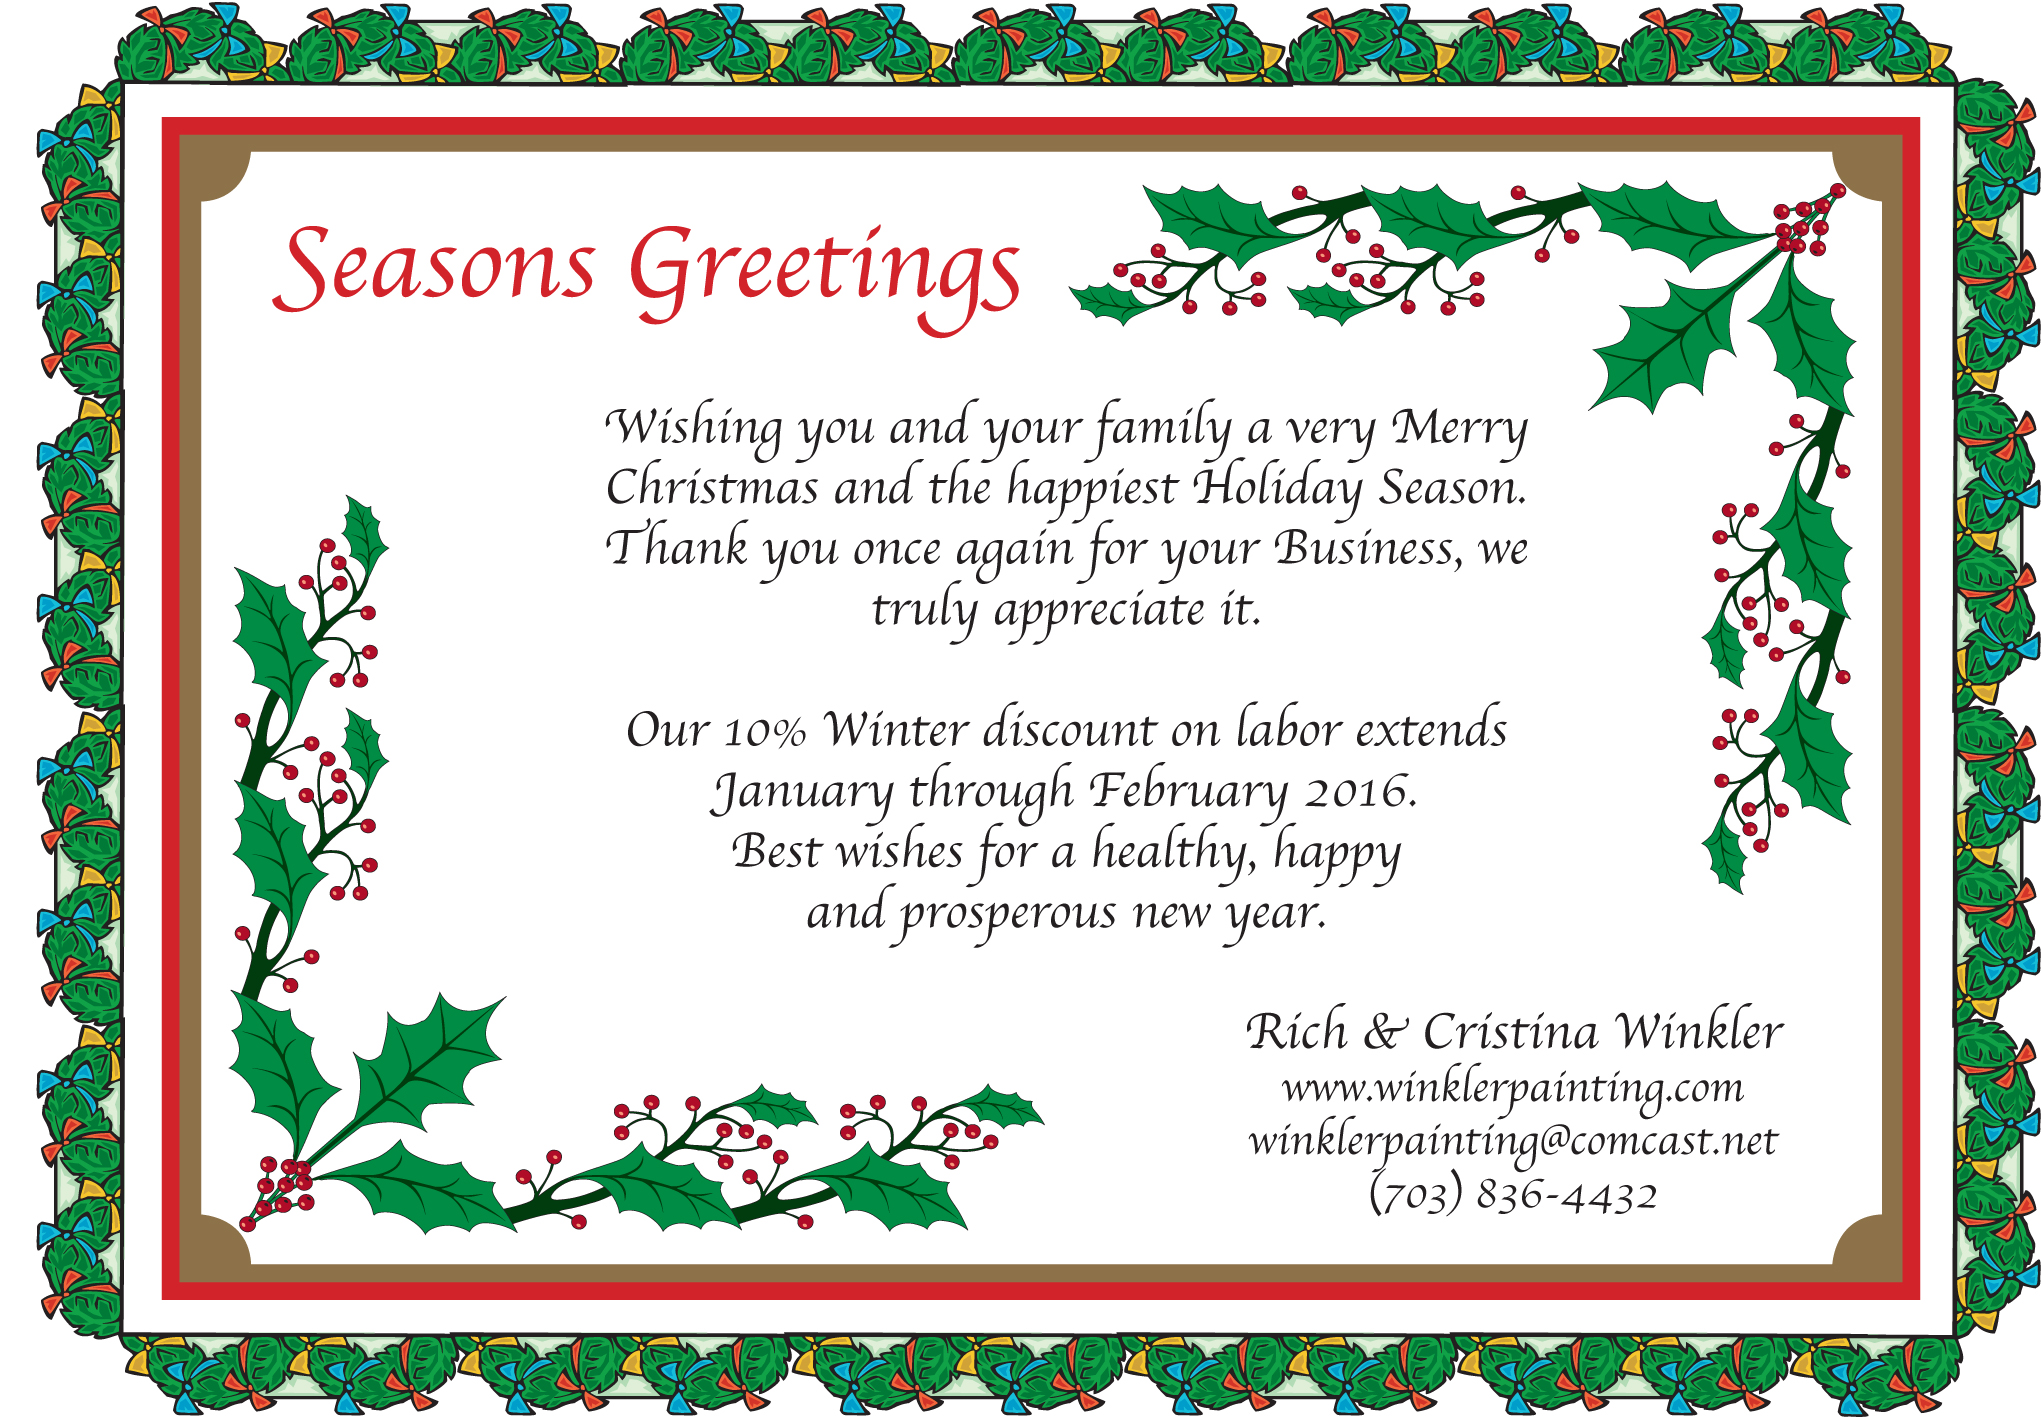 Seasons Greetings Rich Winkler Painting